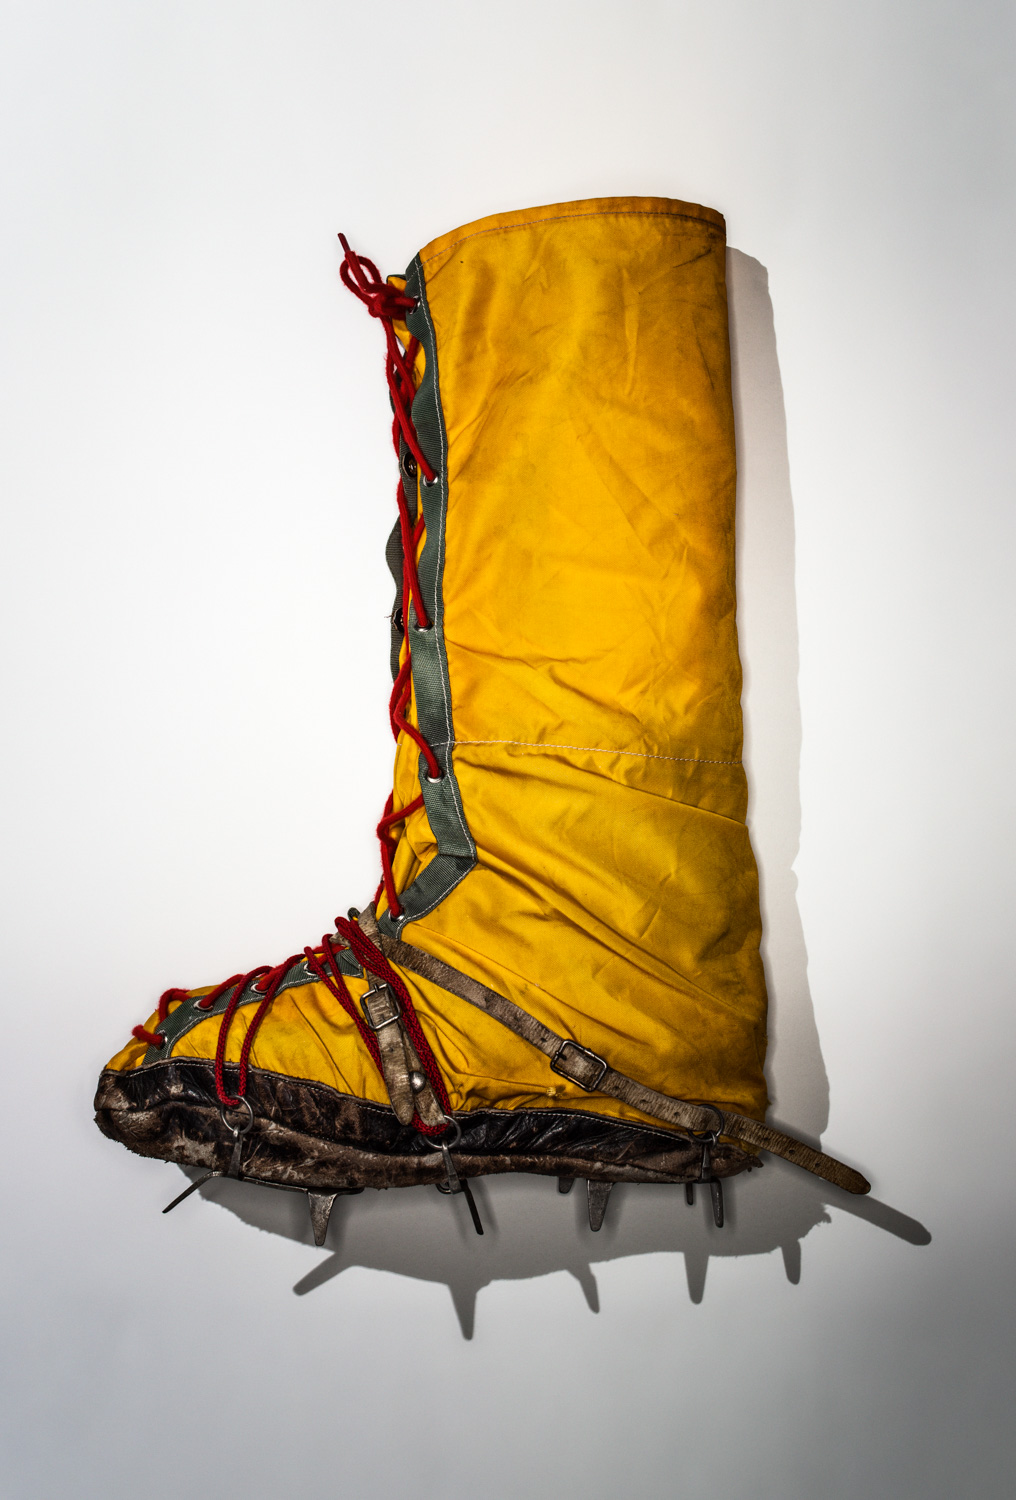 American Mountaineer James Whittaker's Eddie Bauer overboot with crampons.